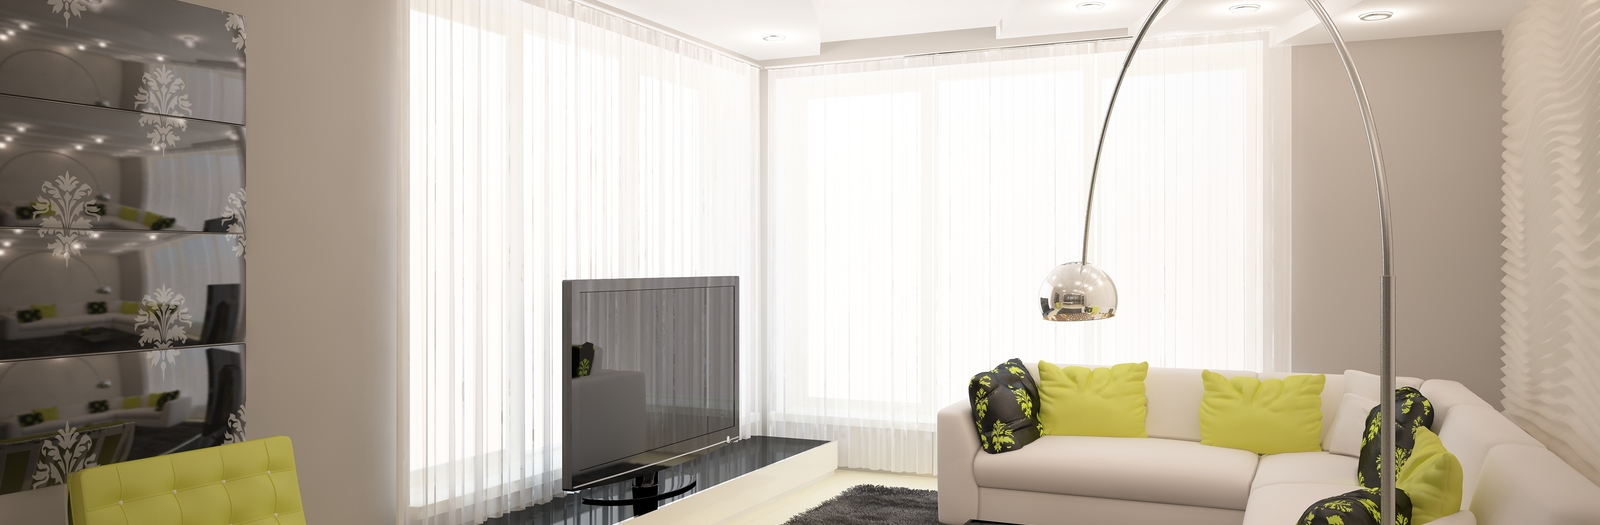 Modern Family Room with sheer white curtains